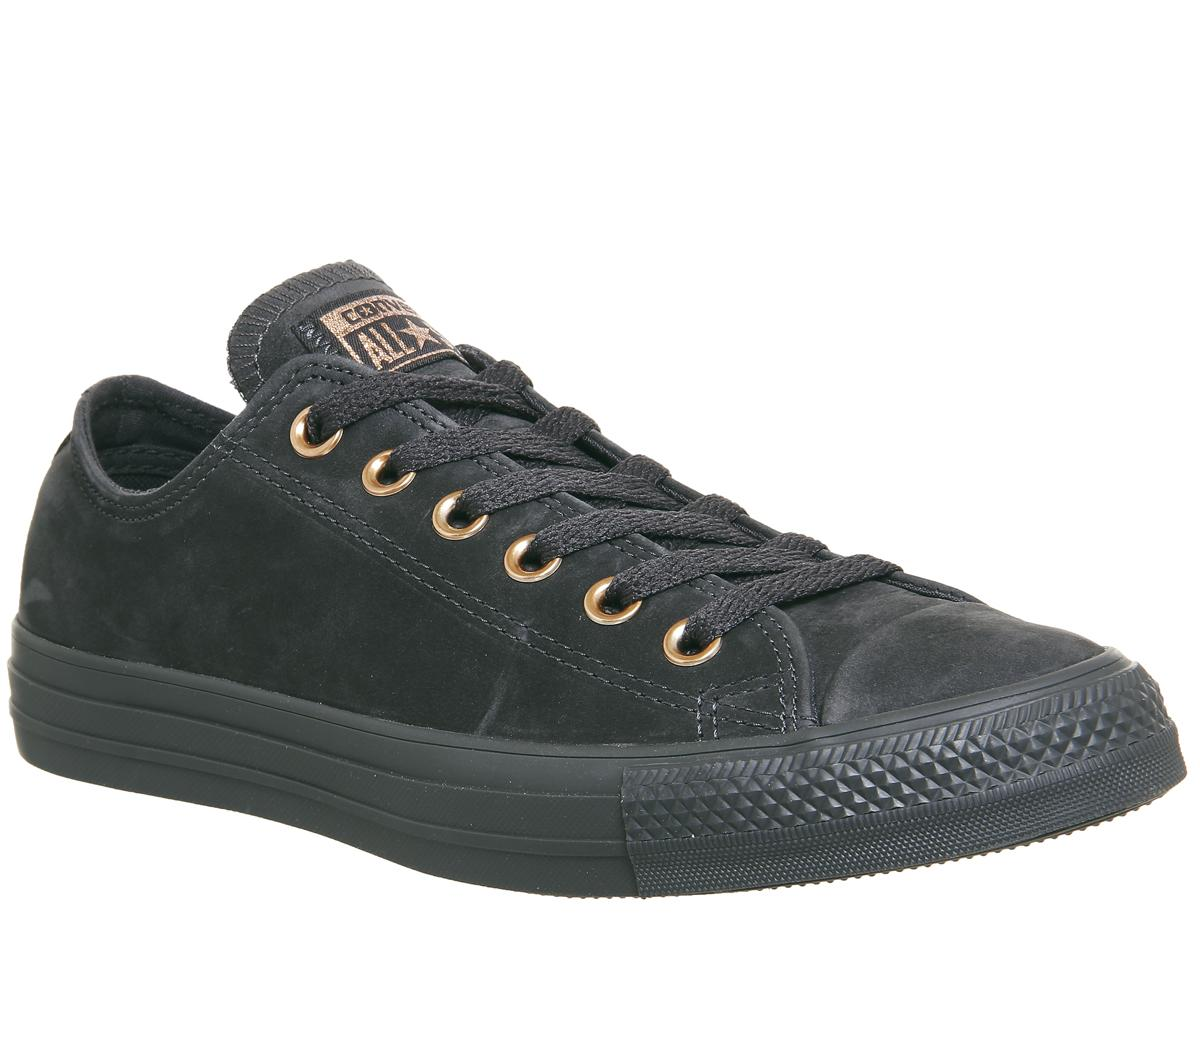 a36c21c3c26b Converse All Star Low Leather Almost Black Rose Gold - Hers trainers